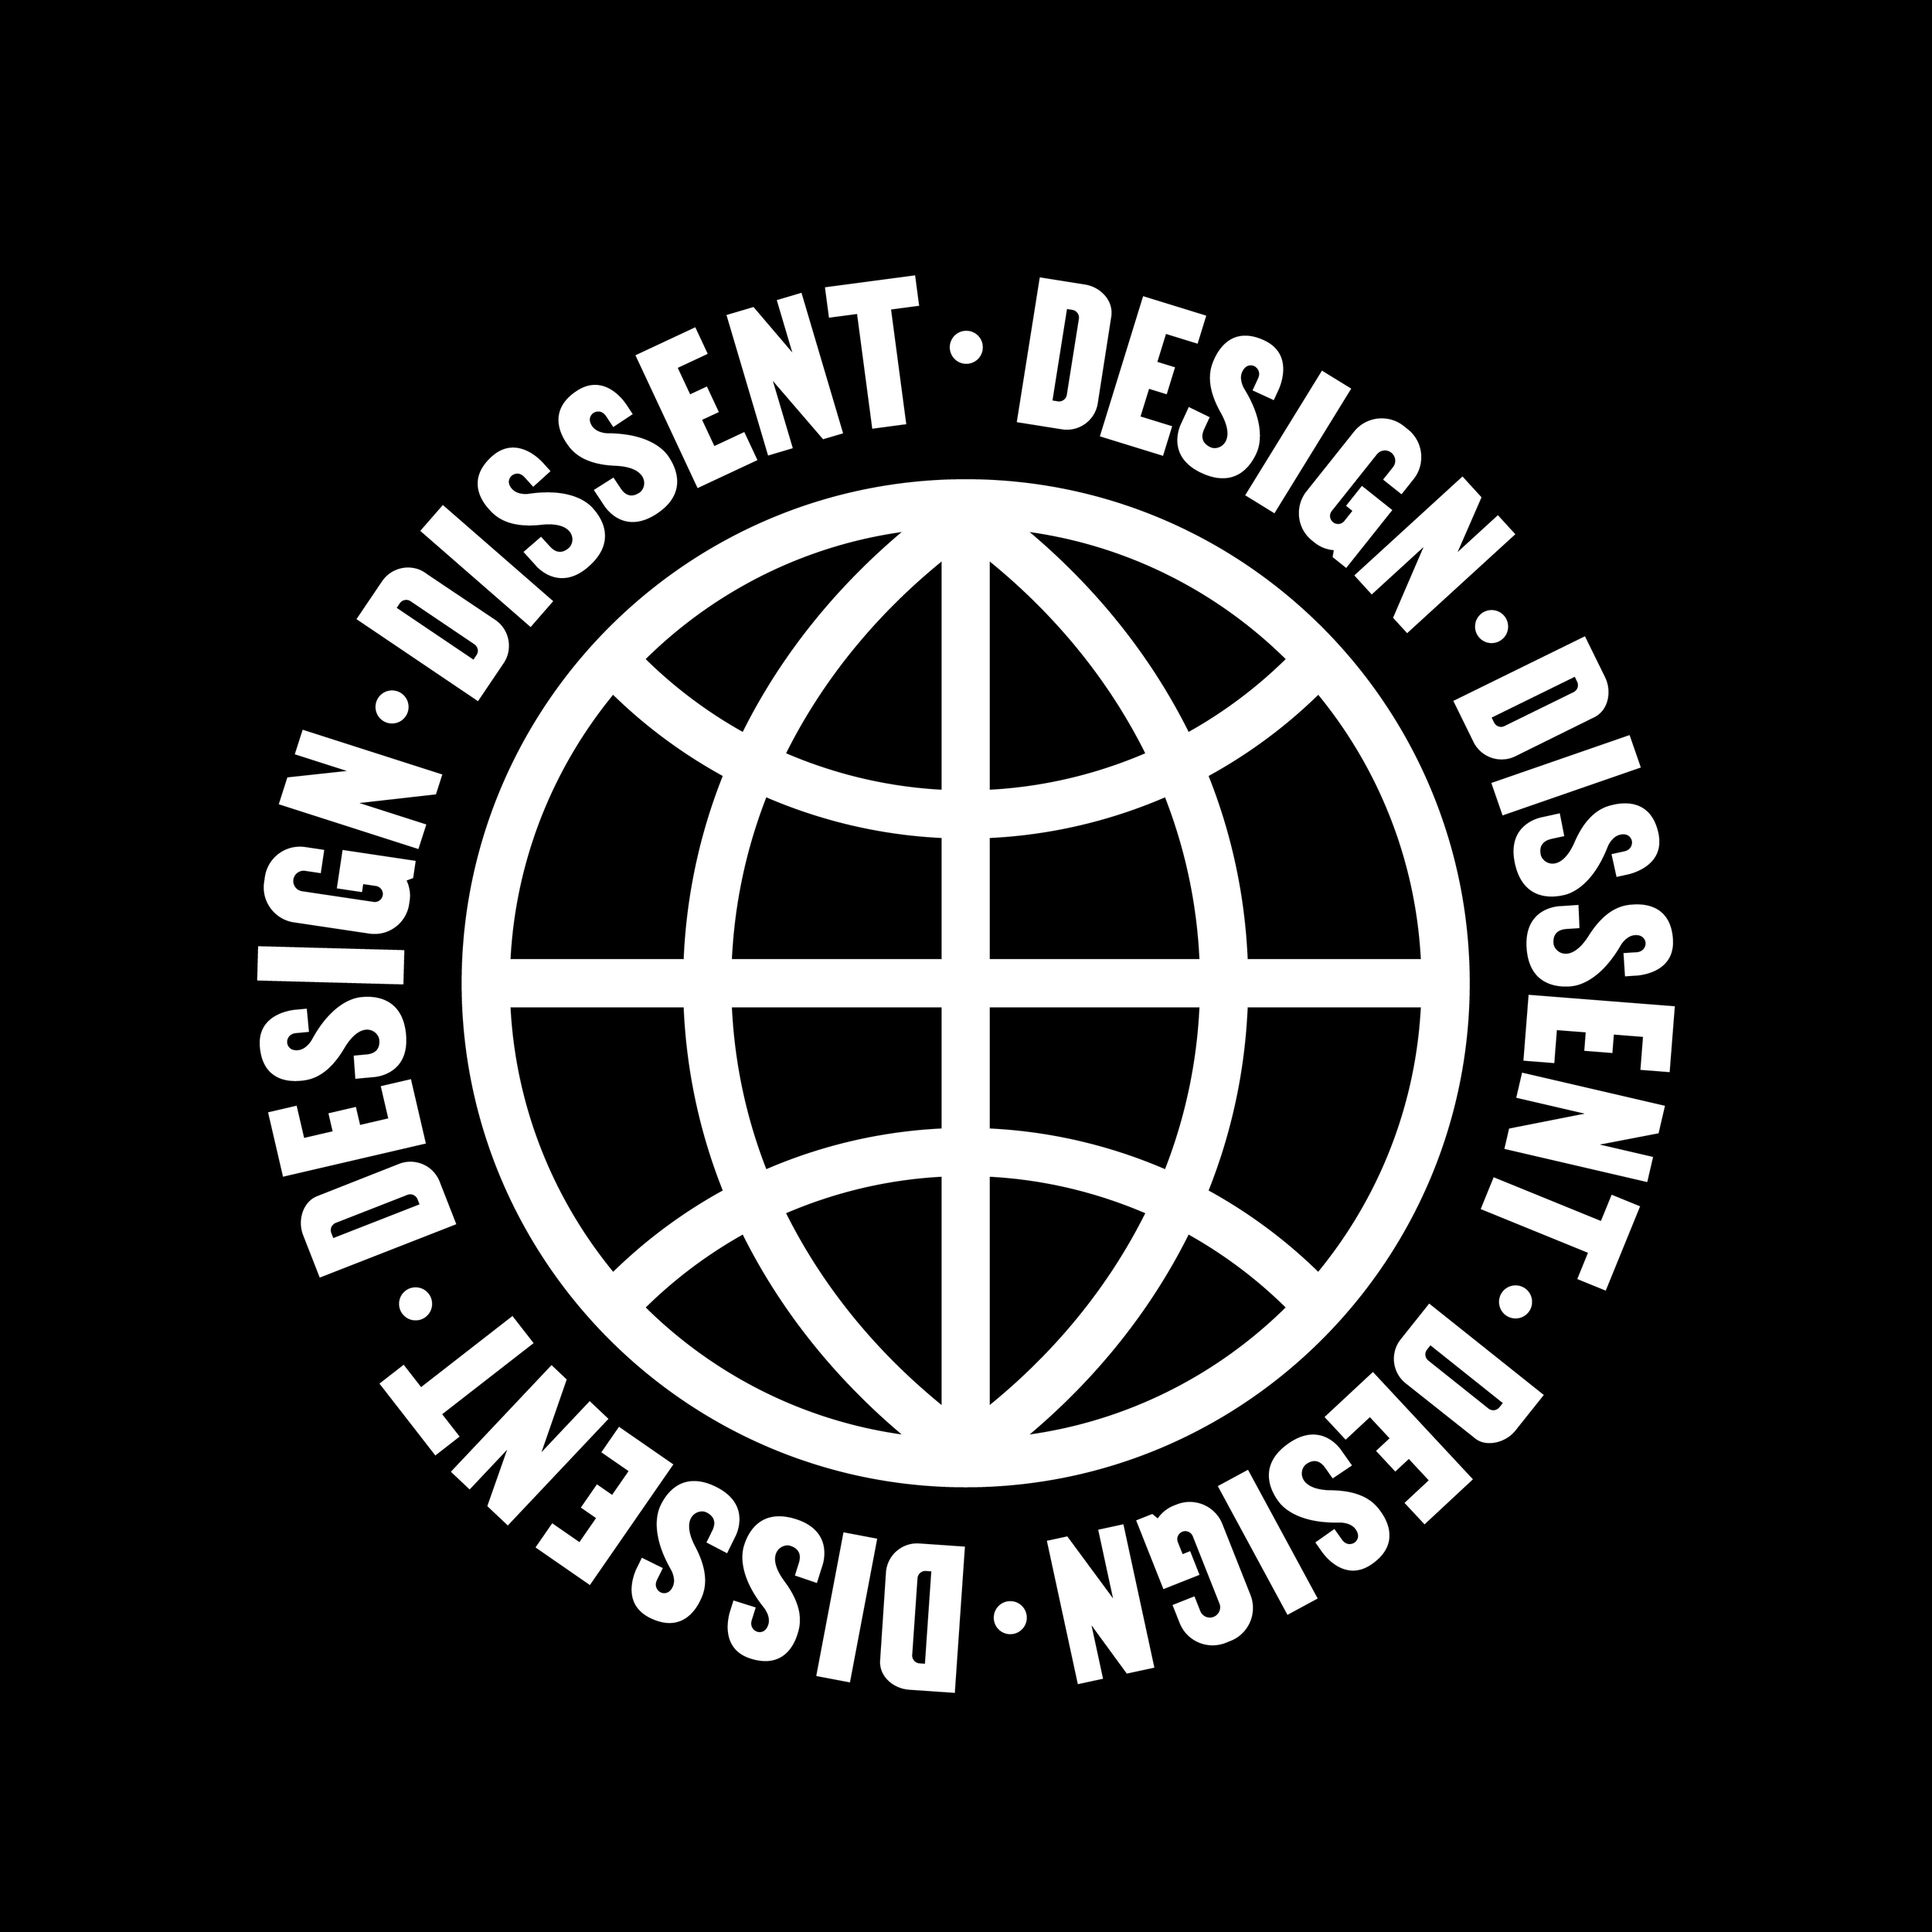 Design-&-Dissent-Badge-White.png